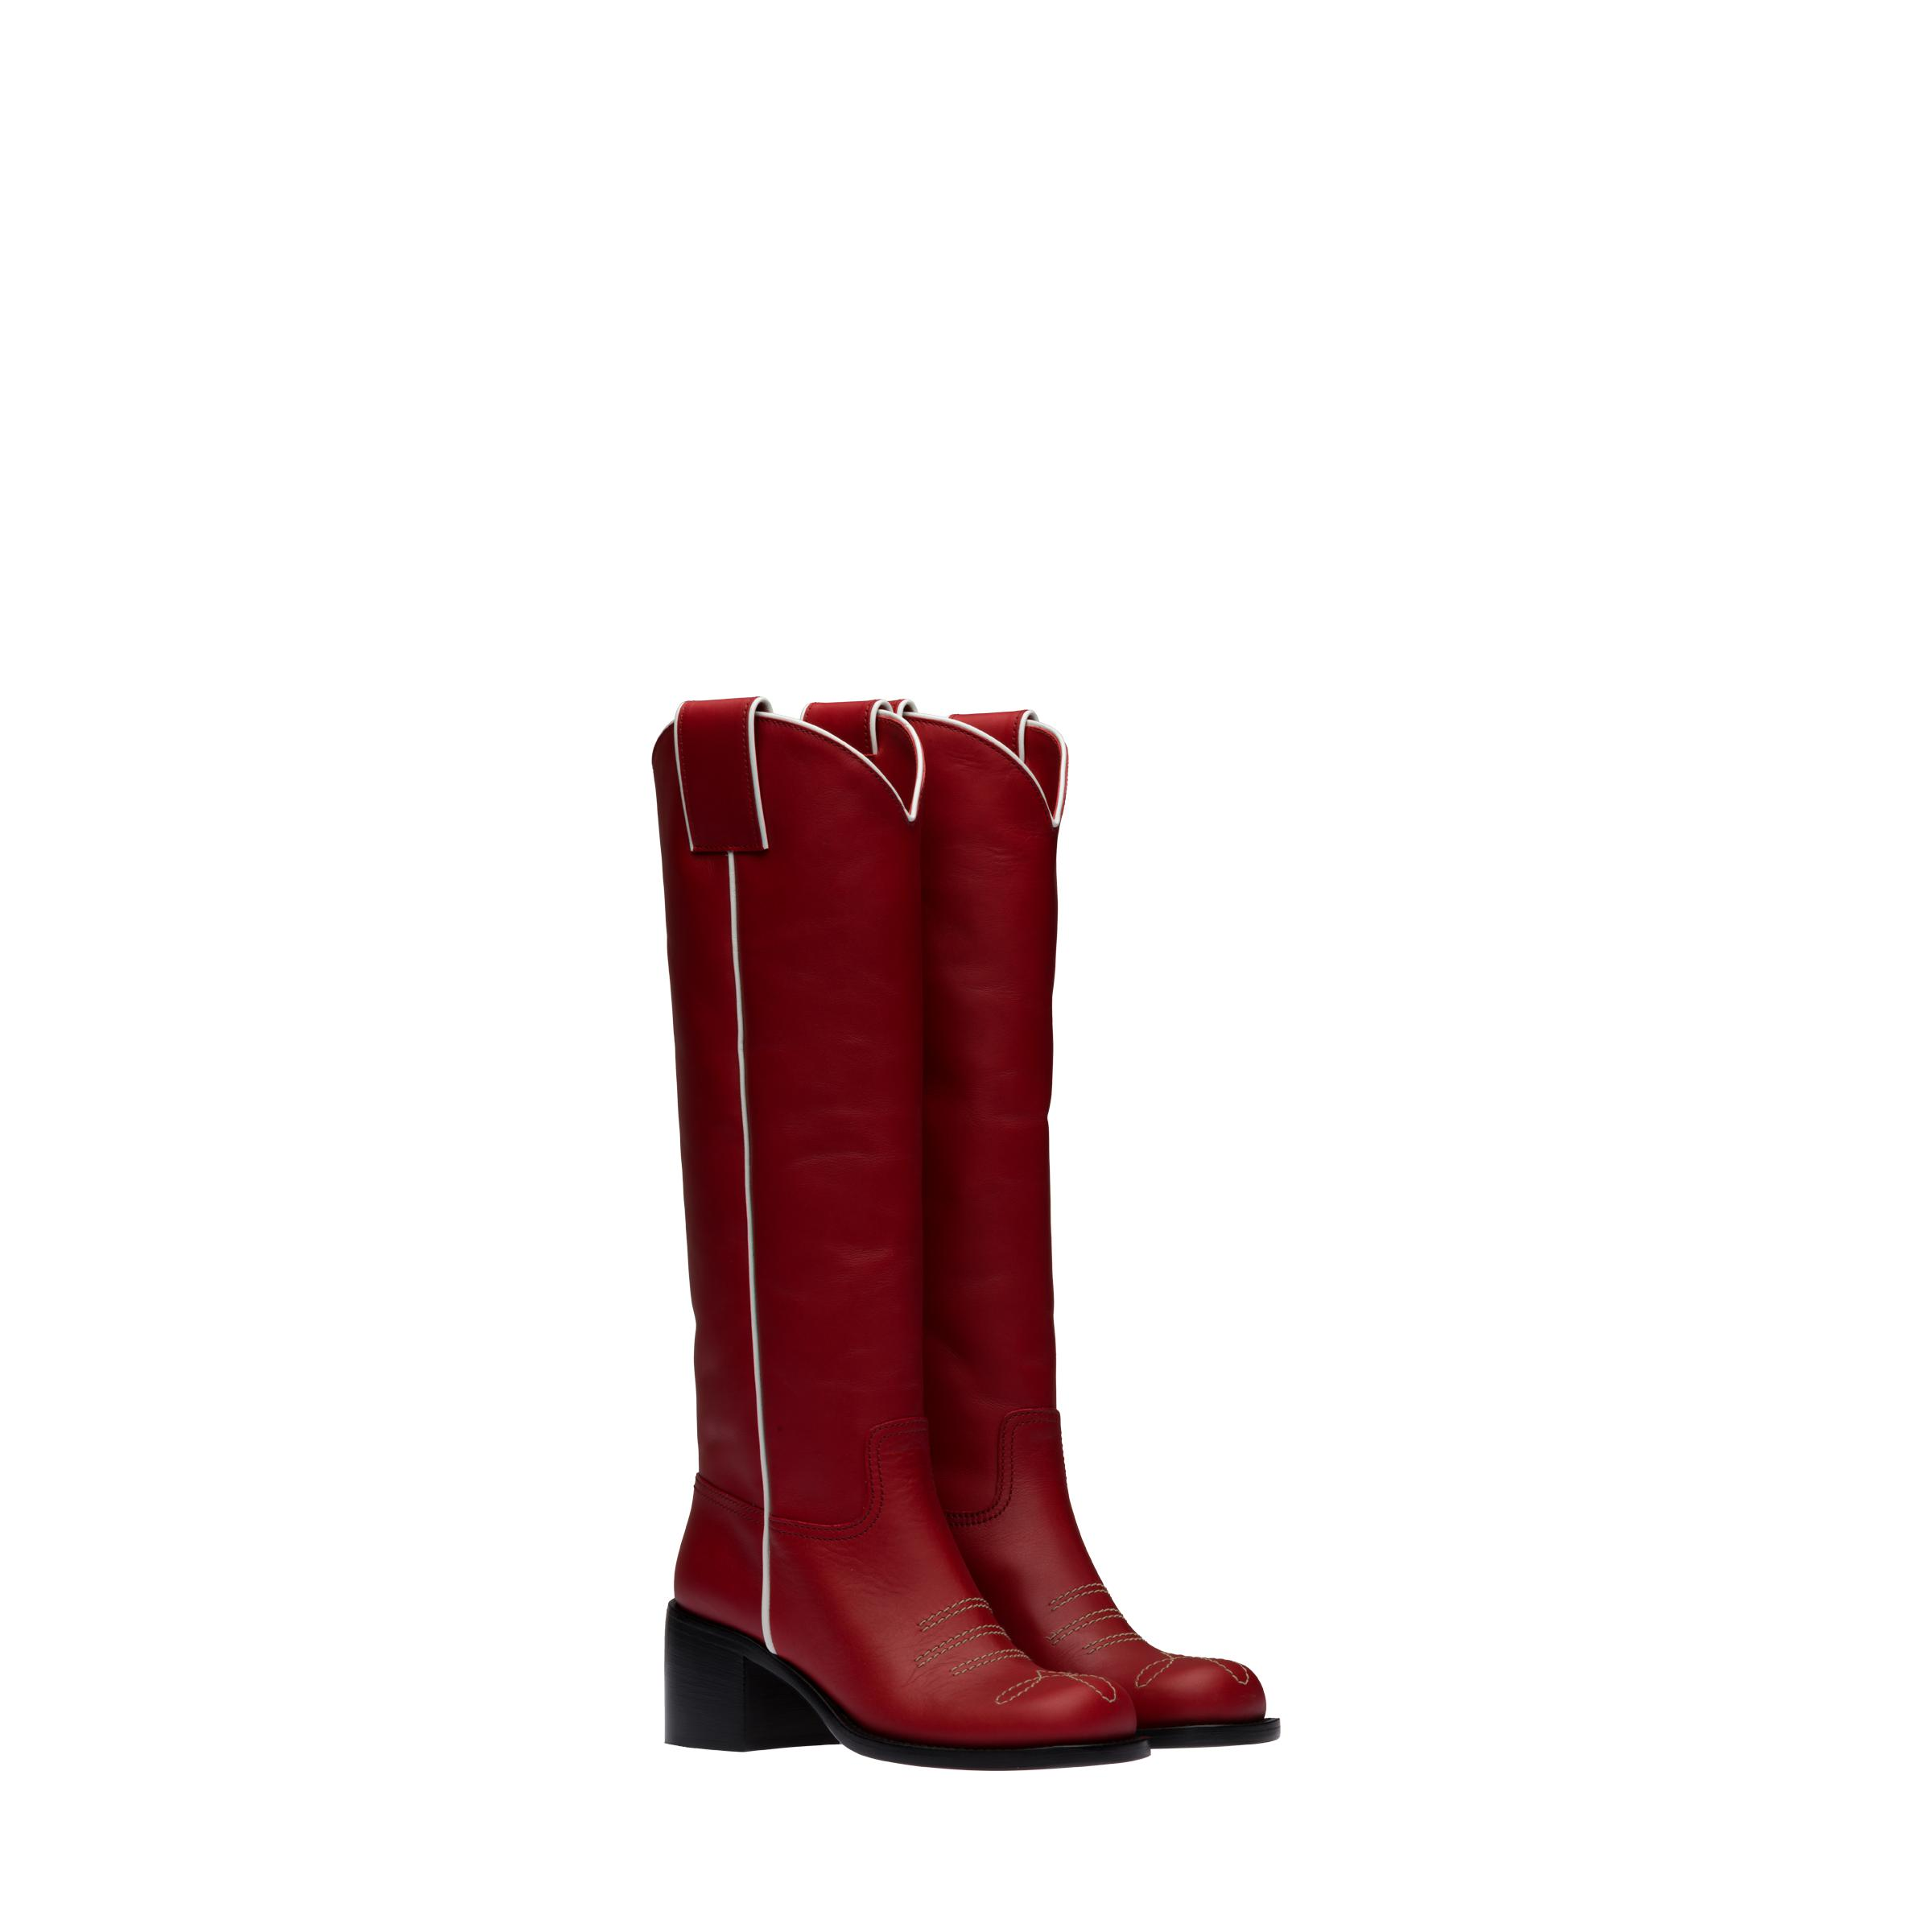 Leather Boots Women Ruby Red/white 0